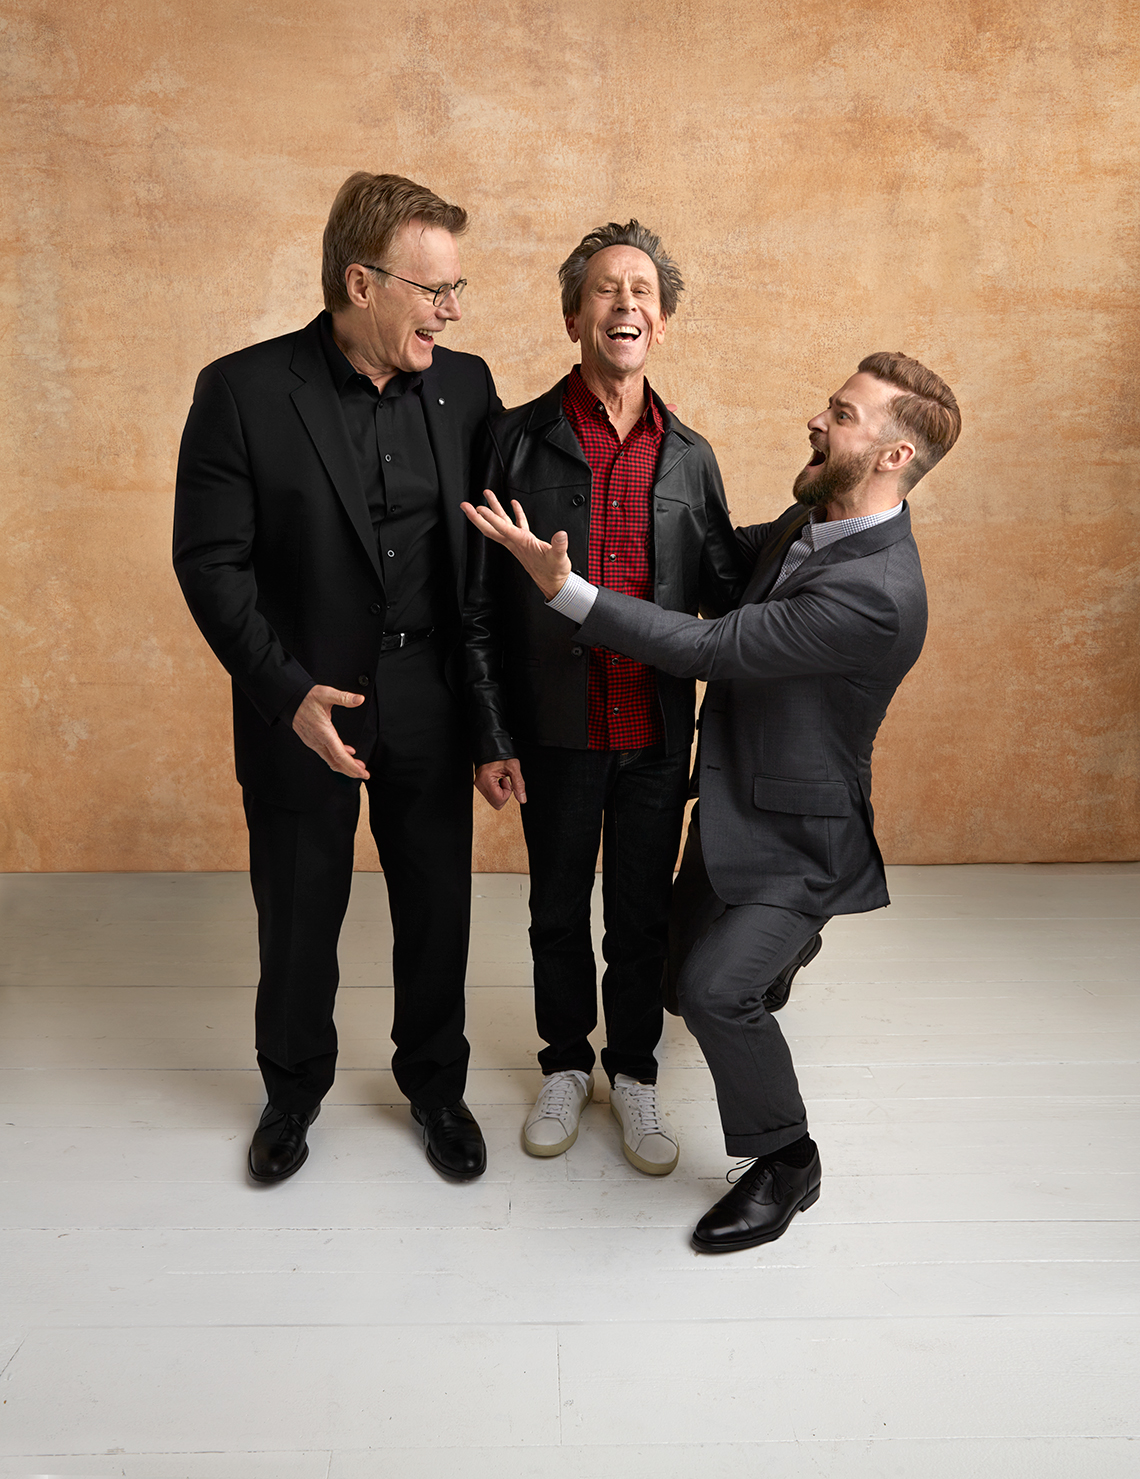 Nigel Sinclair, Brian Grazer and Justin Timberlake at the 16th Annual AARP The Magazine's Movies for Grownups Awards